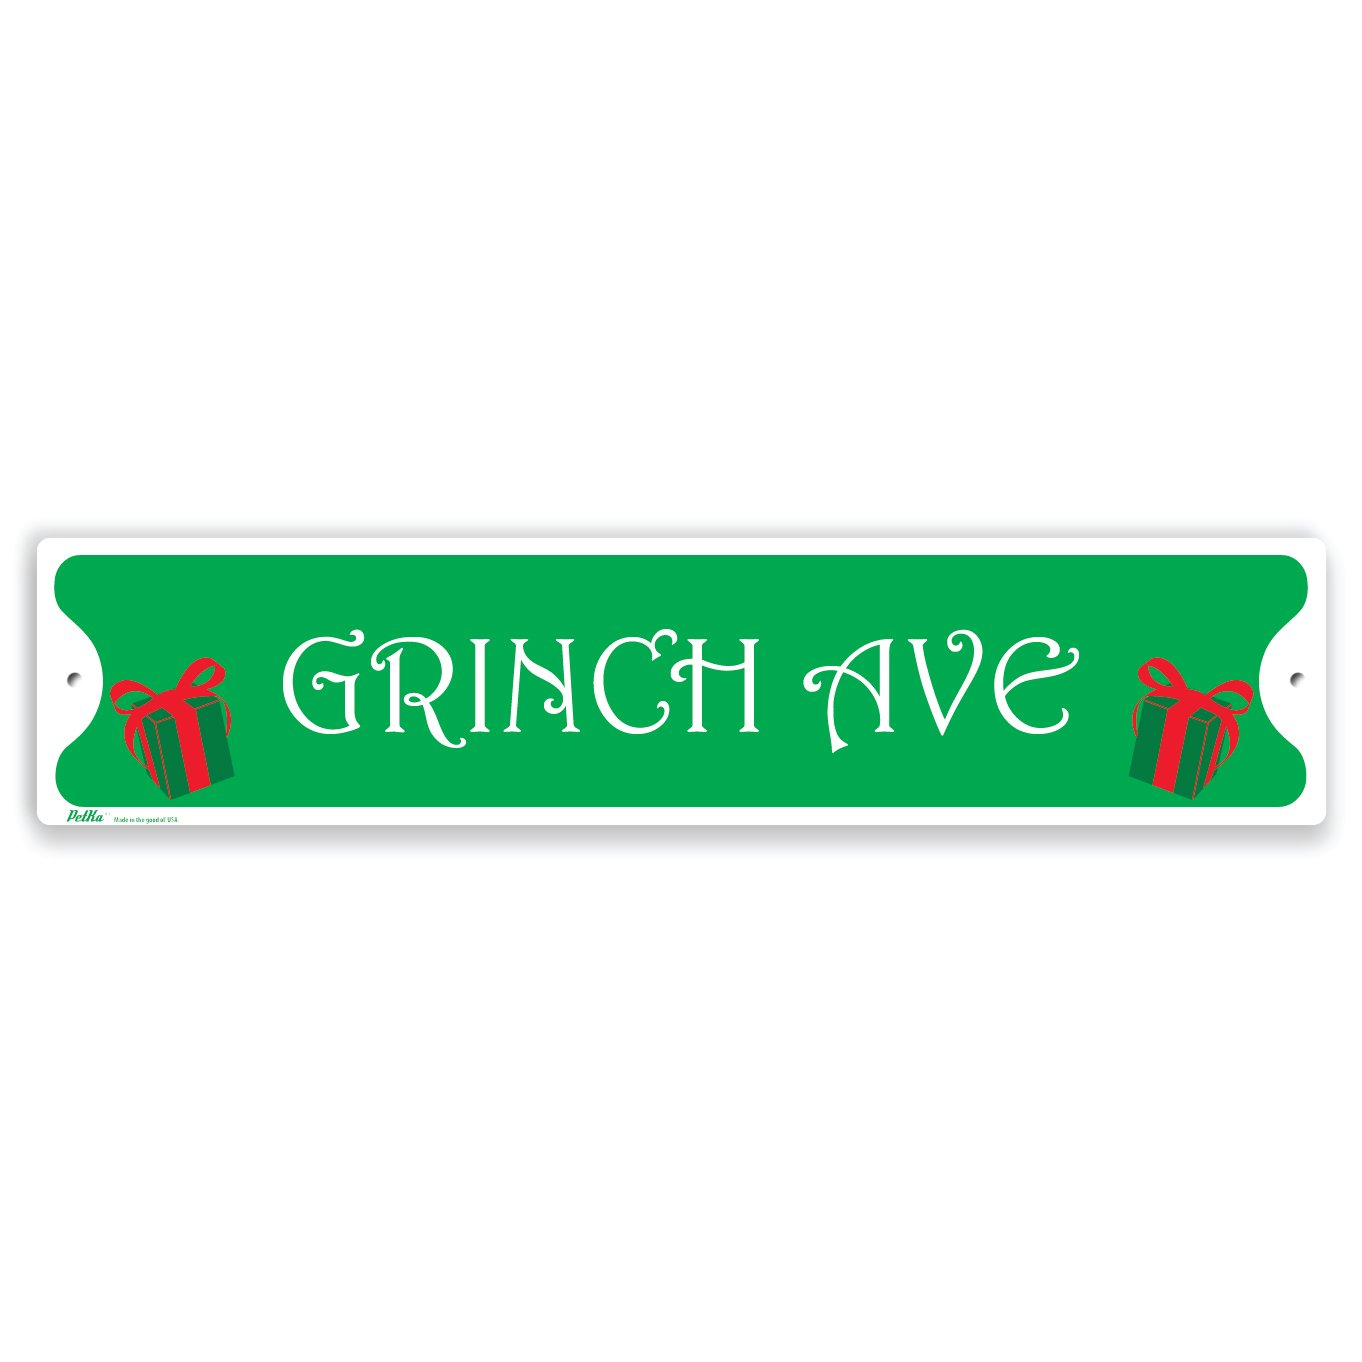 PetKa Signs and Graphics PKXM-0013-NA_18x4Grinch Avenue Aluminum Sign, 18 x 4, Green Text with Red Candy Cane Border 18 x 4 Lyle Signs Inc.